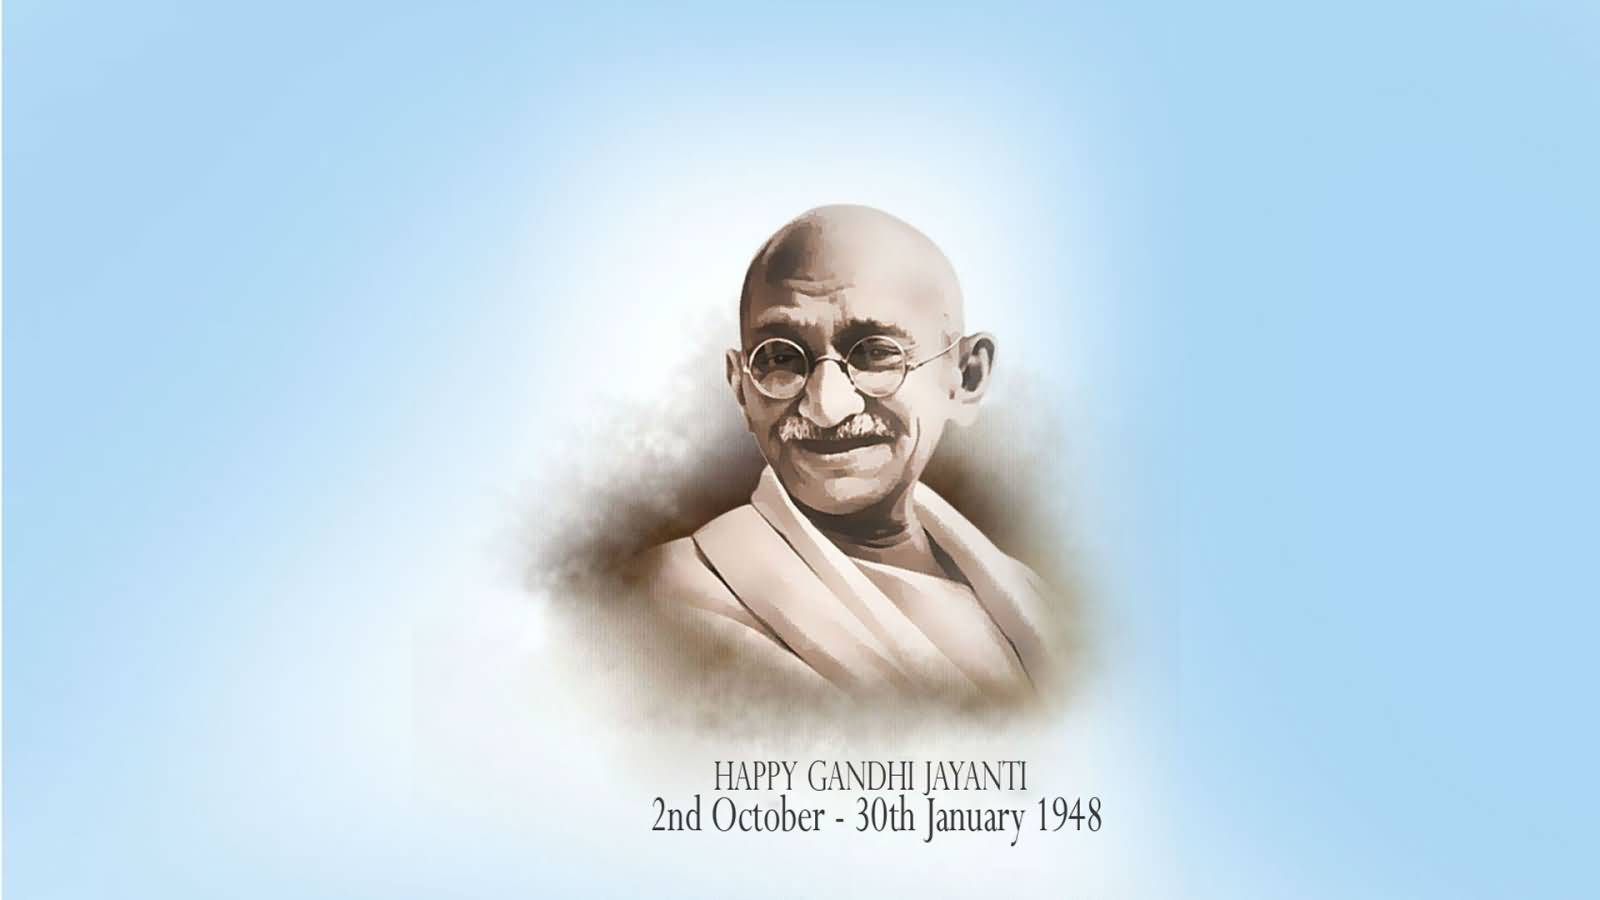 Happy Gandhi Jayanti 2nd October 30th January 1948